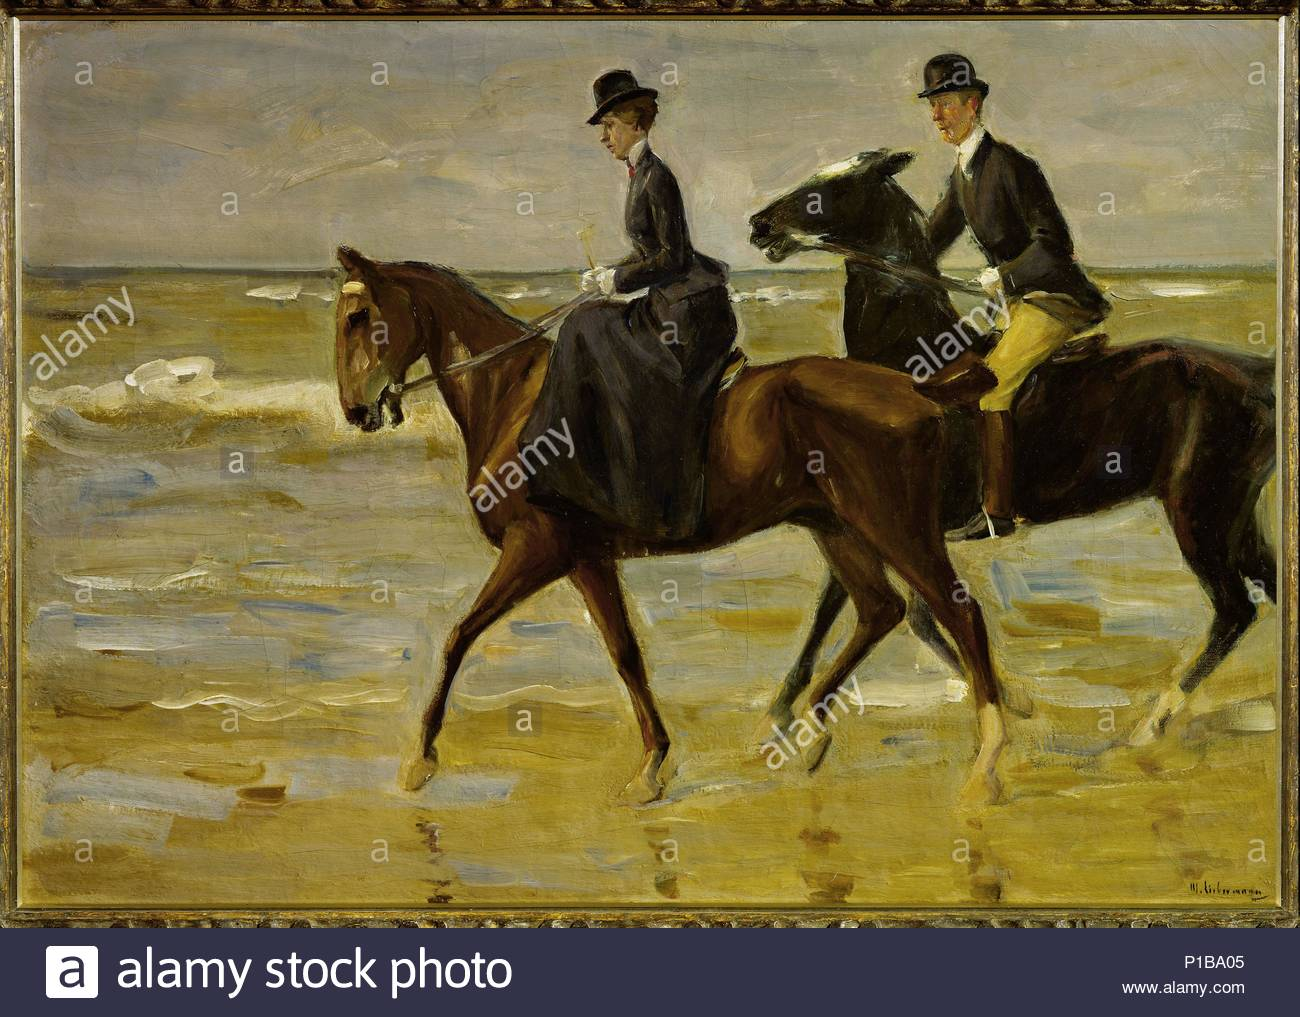 Riders on the beach, 1903 Canvas, 72,5 x 101 cm Inv. WRM 2819. Author: Max Liebermann (1847-1935). Location: Wallraf-Richartz-Museum, Cologne, Germany. - Stock Image